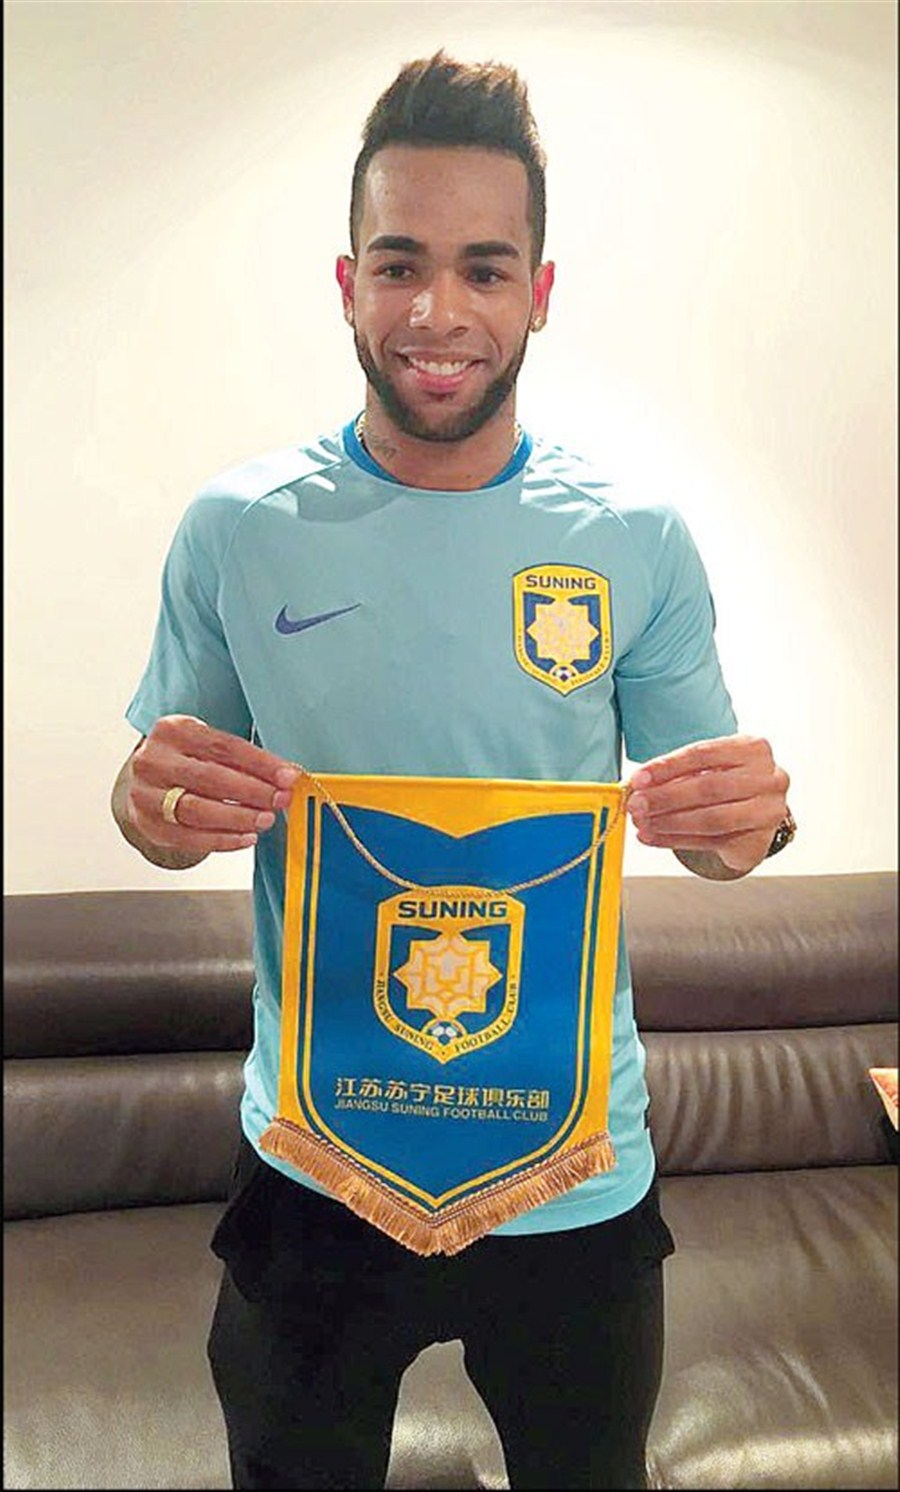 Another record transfer as Jiangsu shells out US$56m for Teixeira